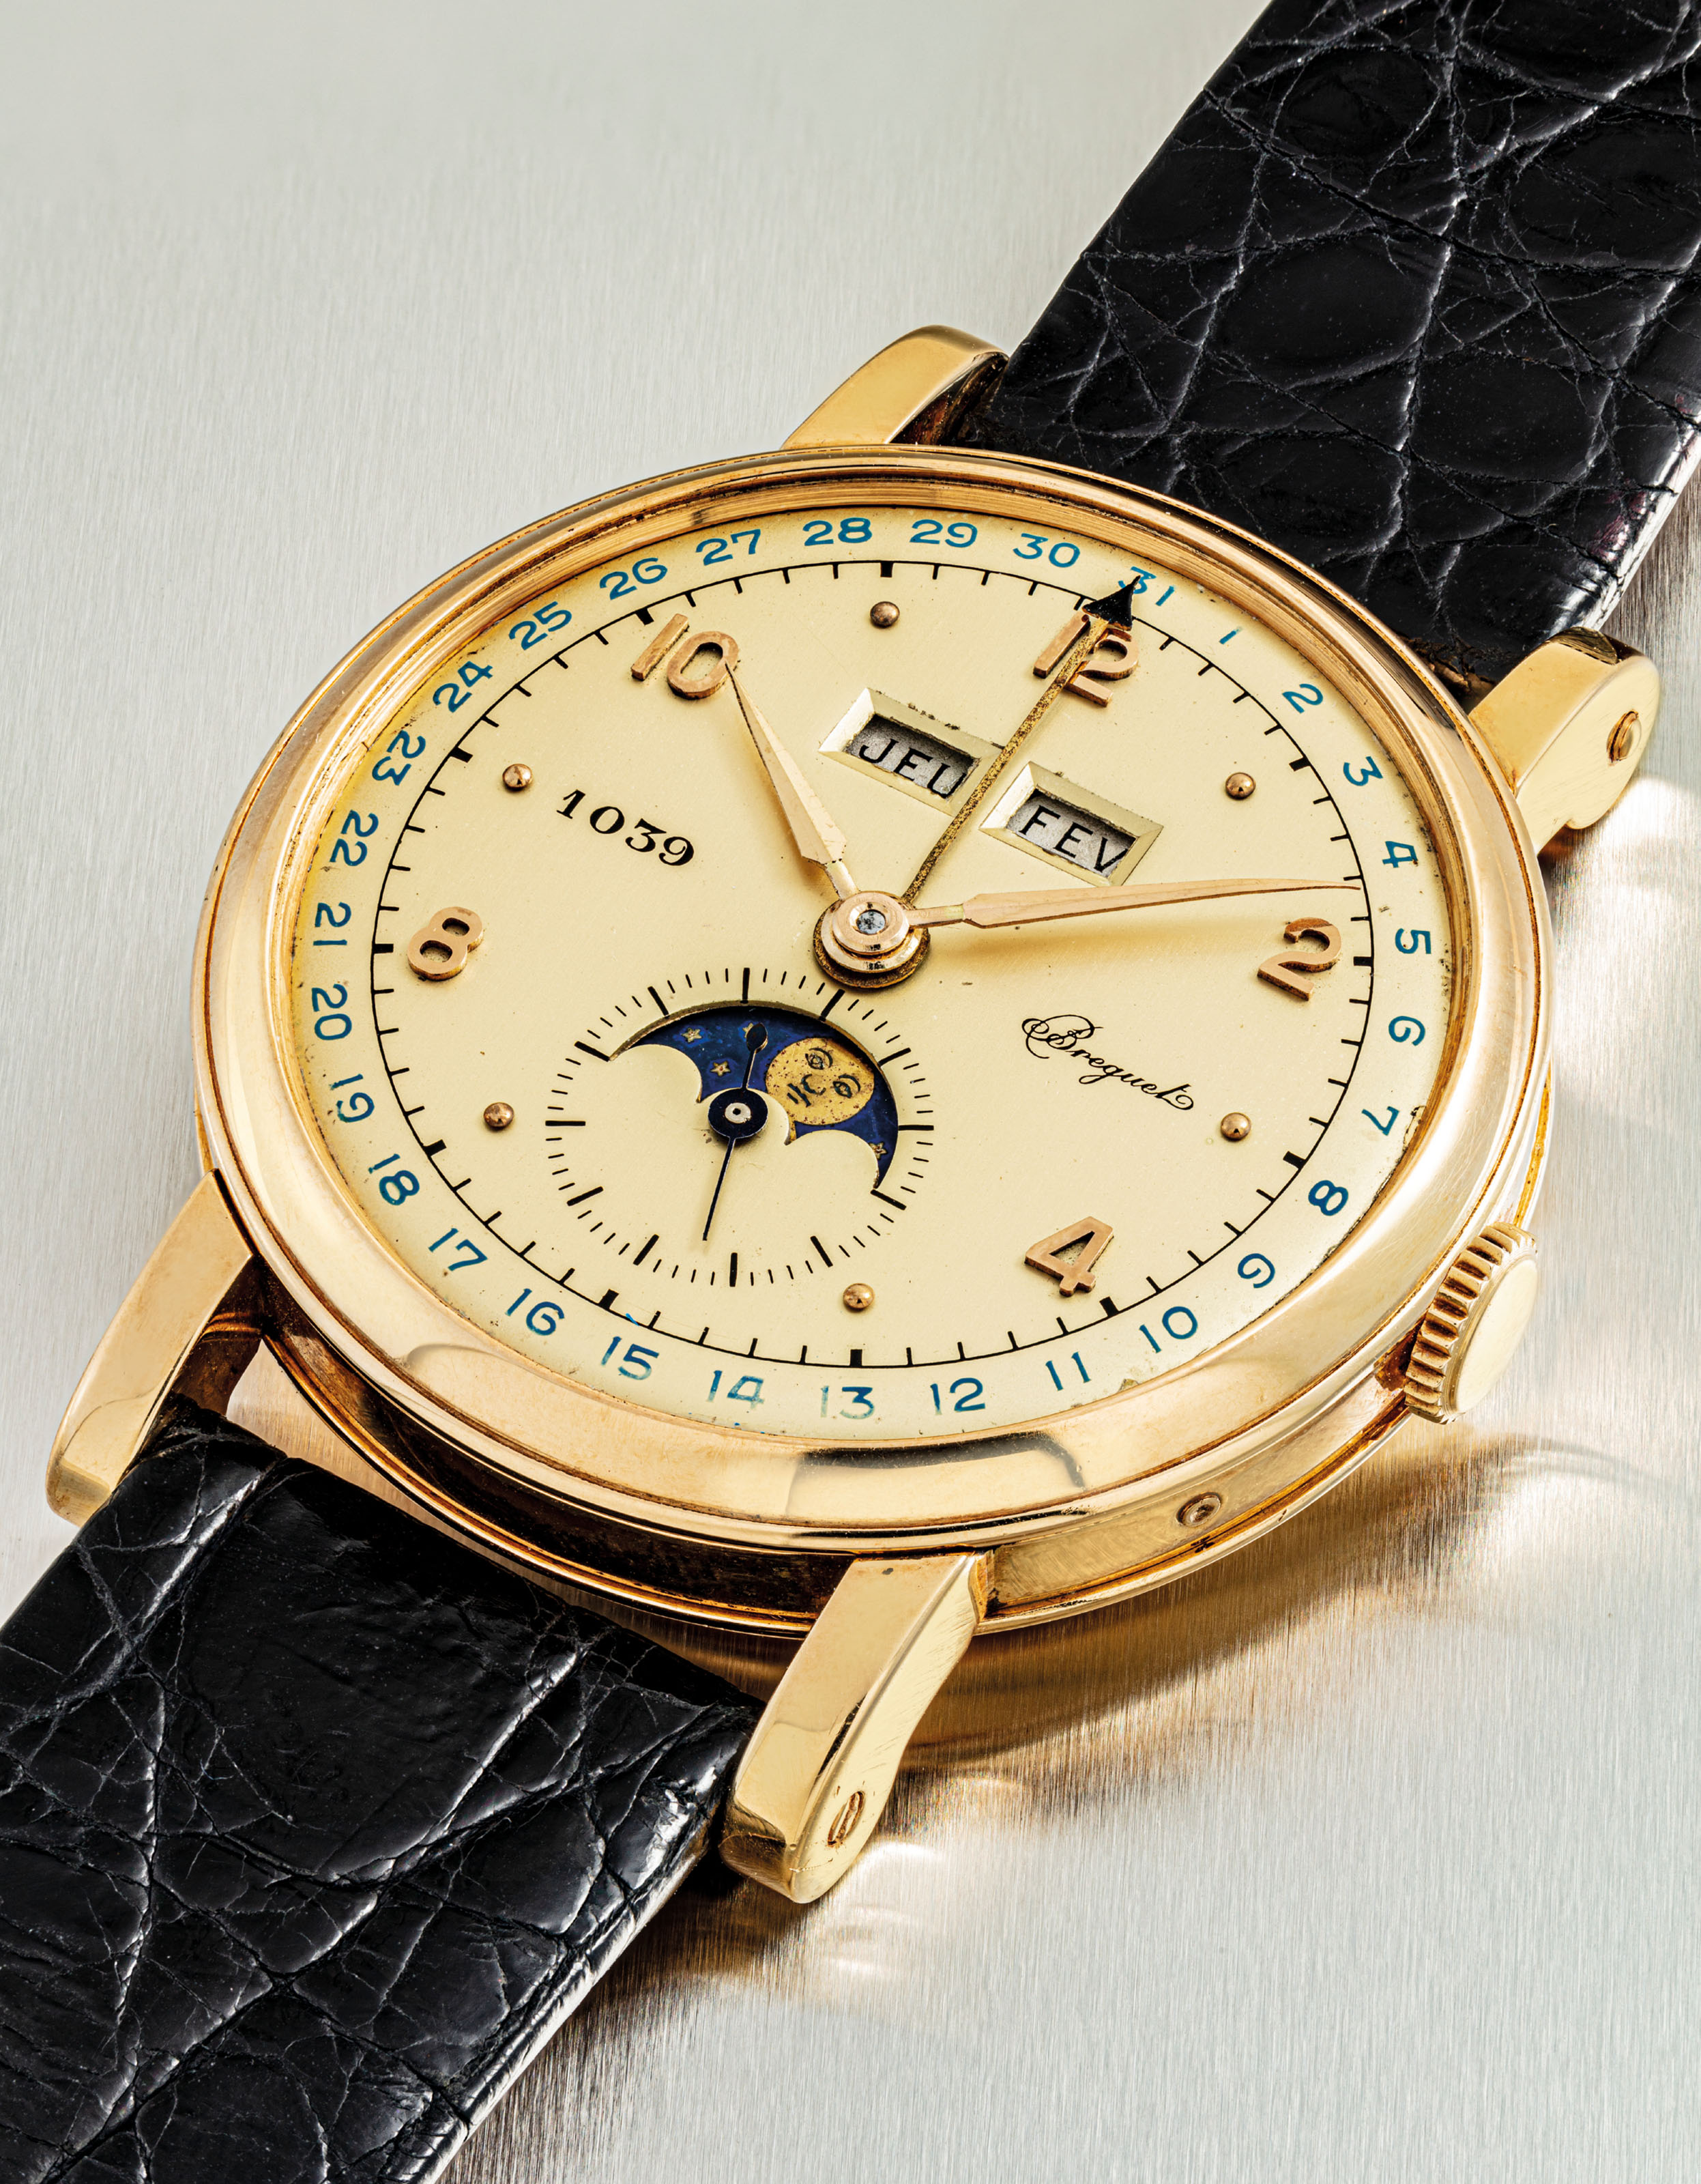 BREGUET. A VERY FINE AND EXTREMELY RARE 18K GOLD TRIPLE CALENDAR WRISTWATCH WITH MOON PHASES AND PINK DIAL